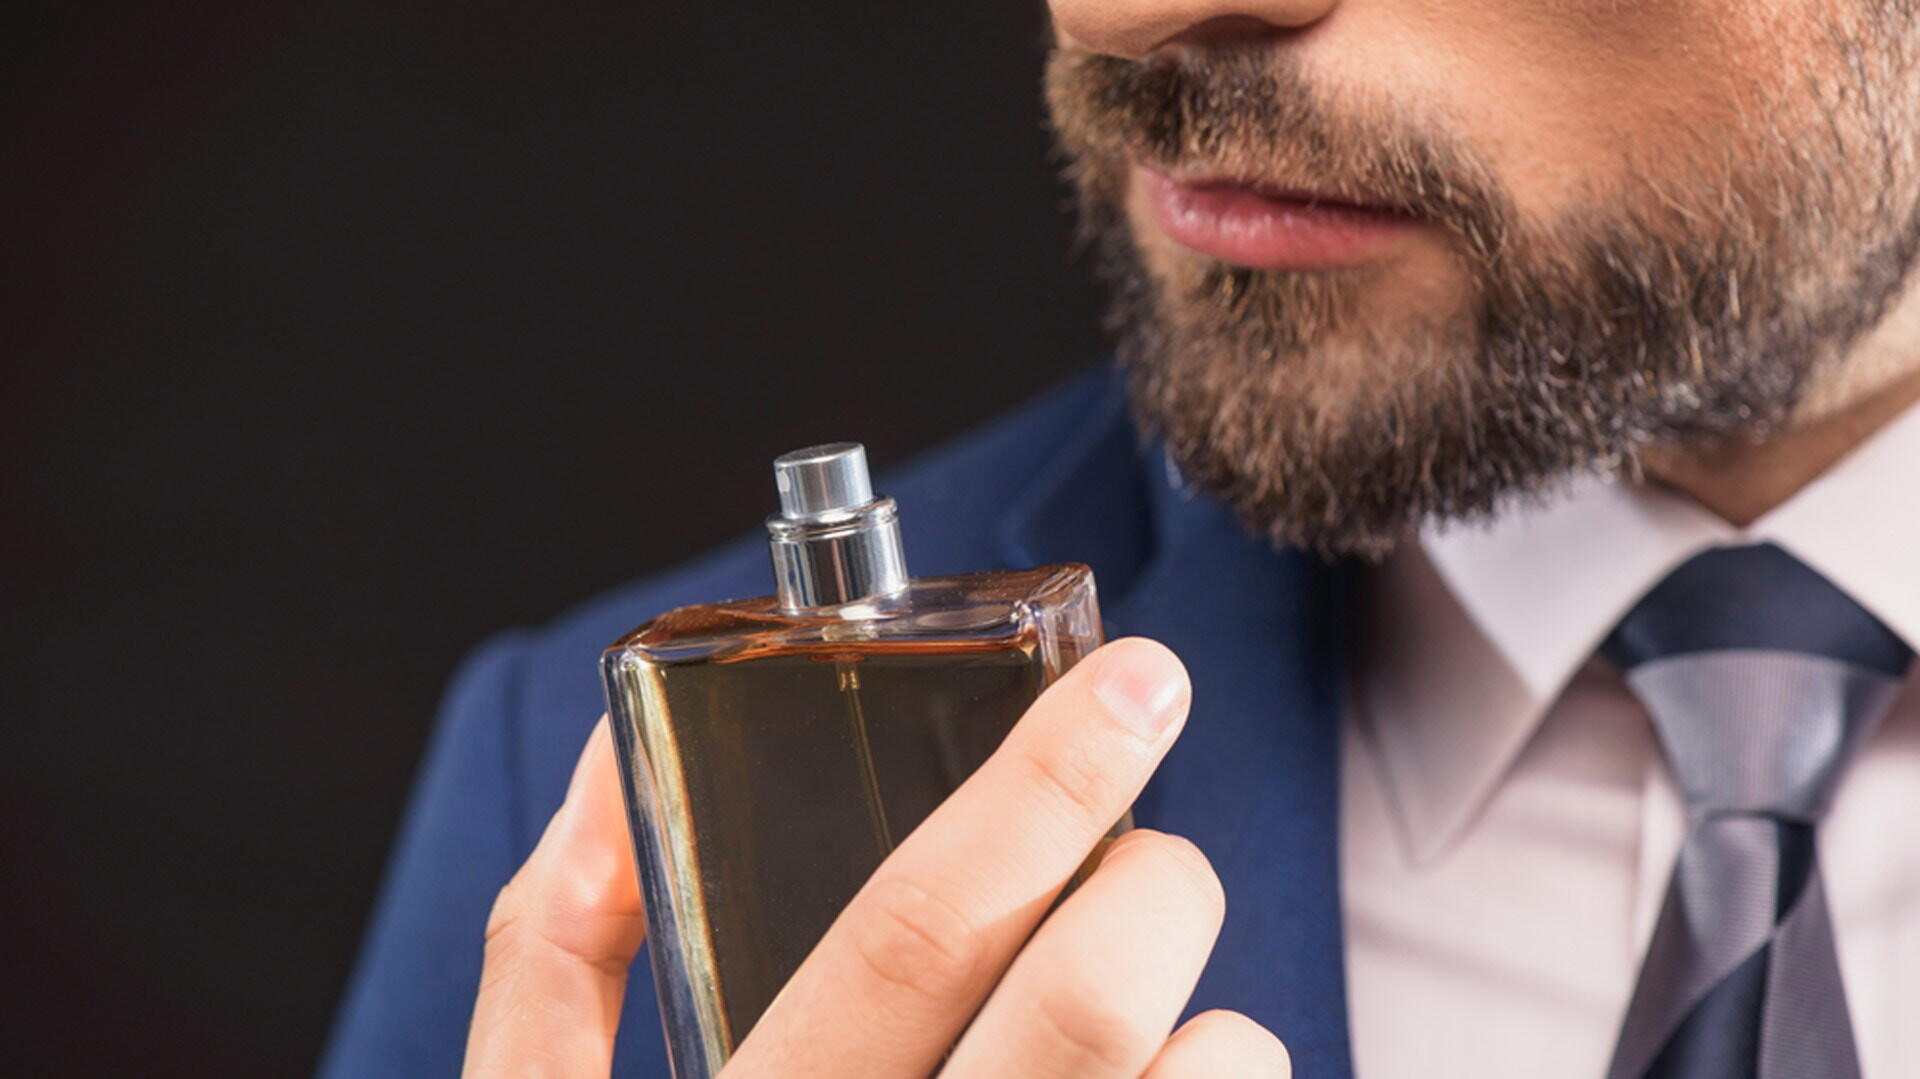 gq-native-man-smelling-perfume-scent-fragrance-min